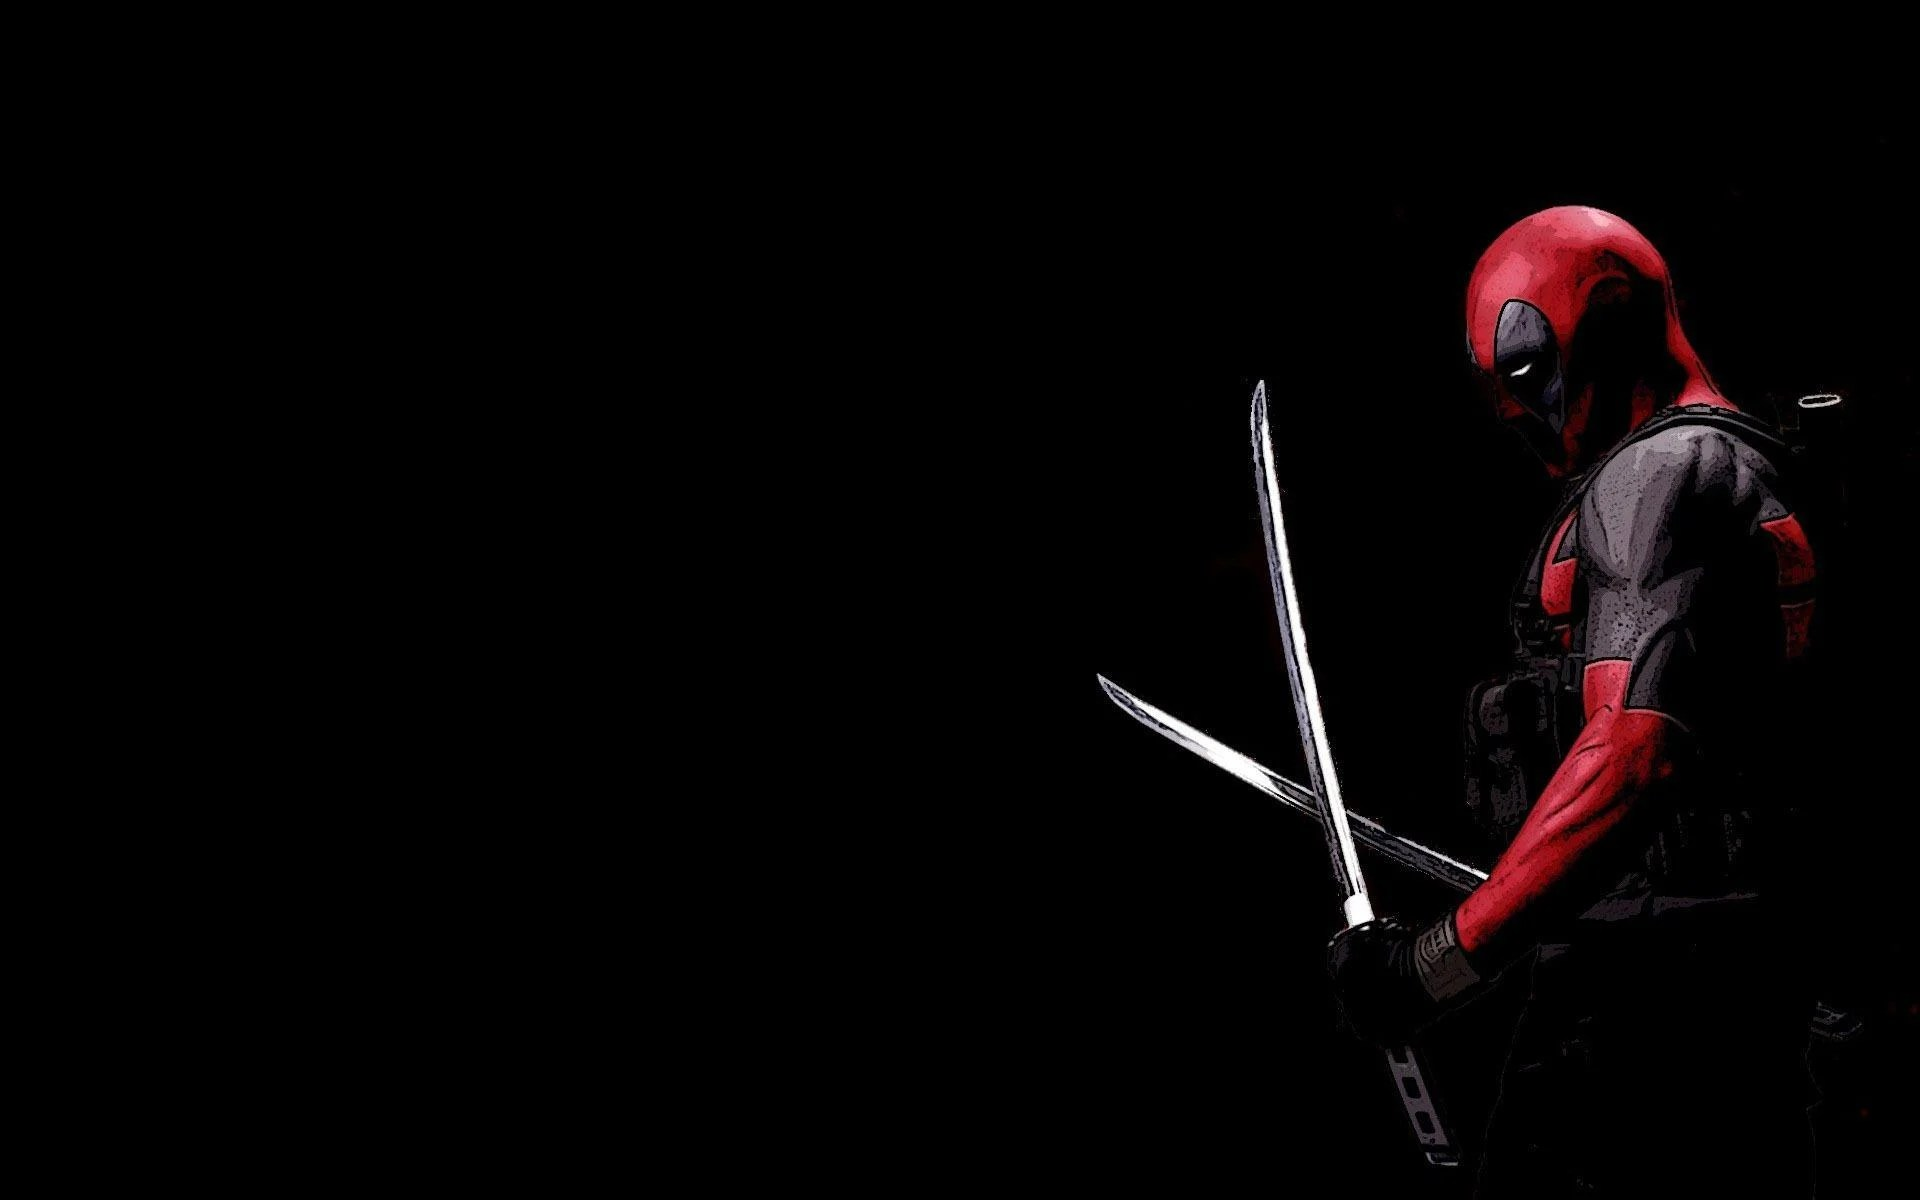 Deadpool Wallpapers HD   Wallpaper Cave Deadpool Wallpapers   Full HD wallpaper search